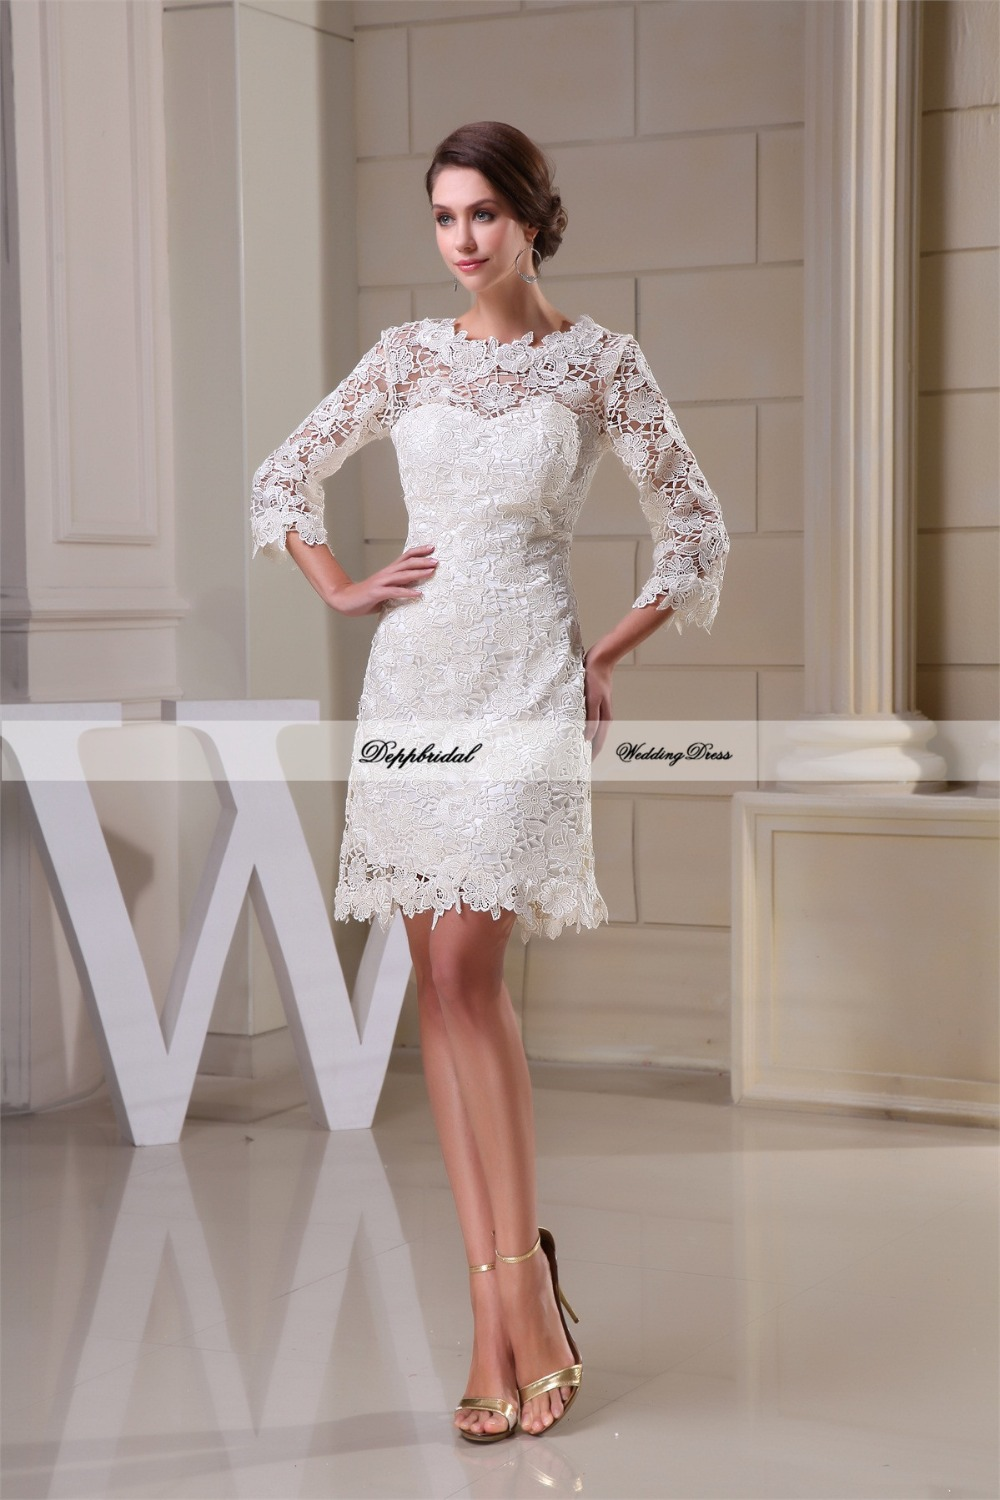 Buy wholesale wedding dress lace sheath 3 for Short sheath wedding dress